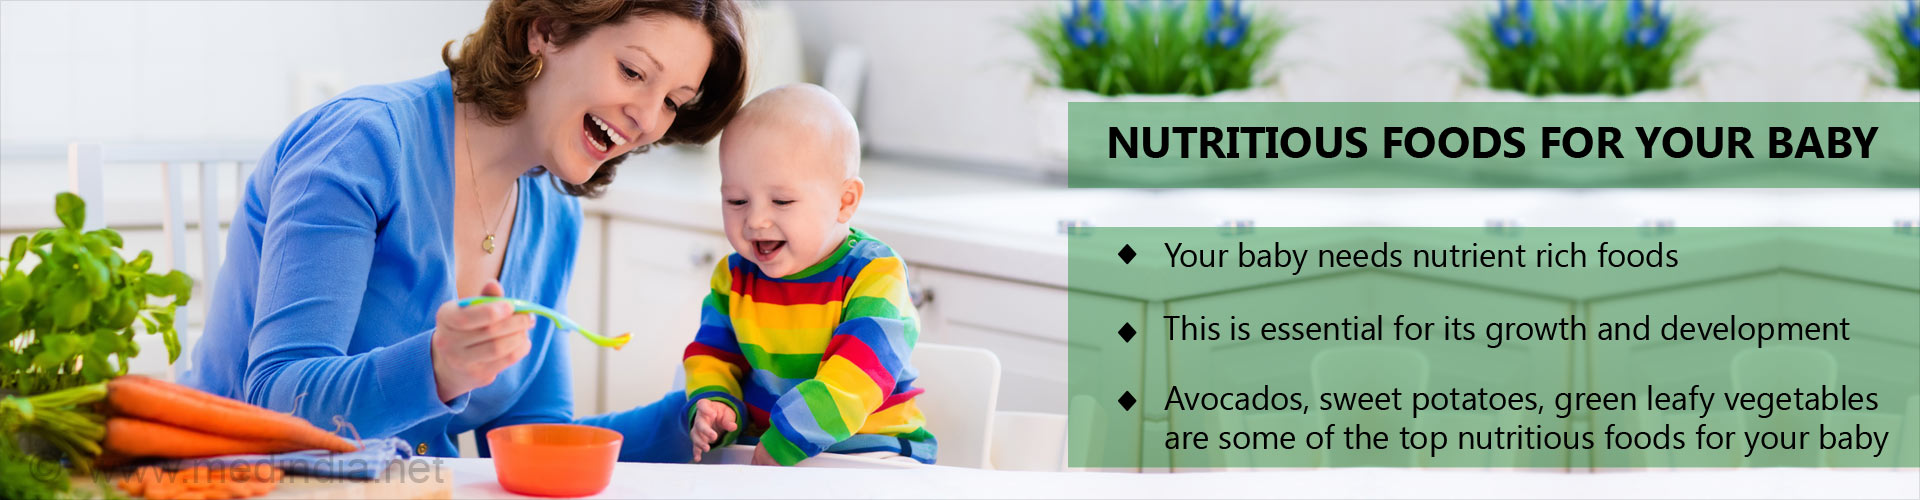 Nutritious foods for your baby